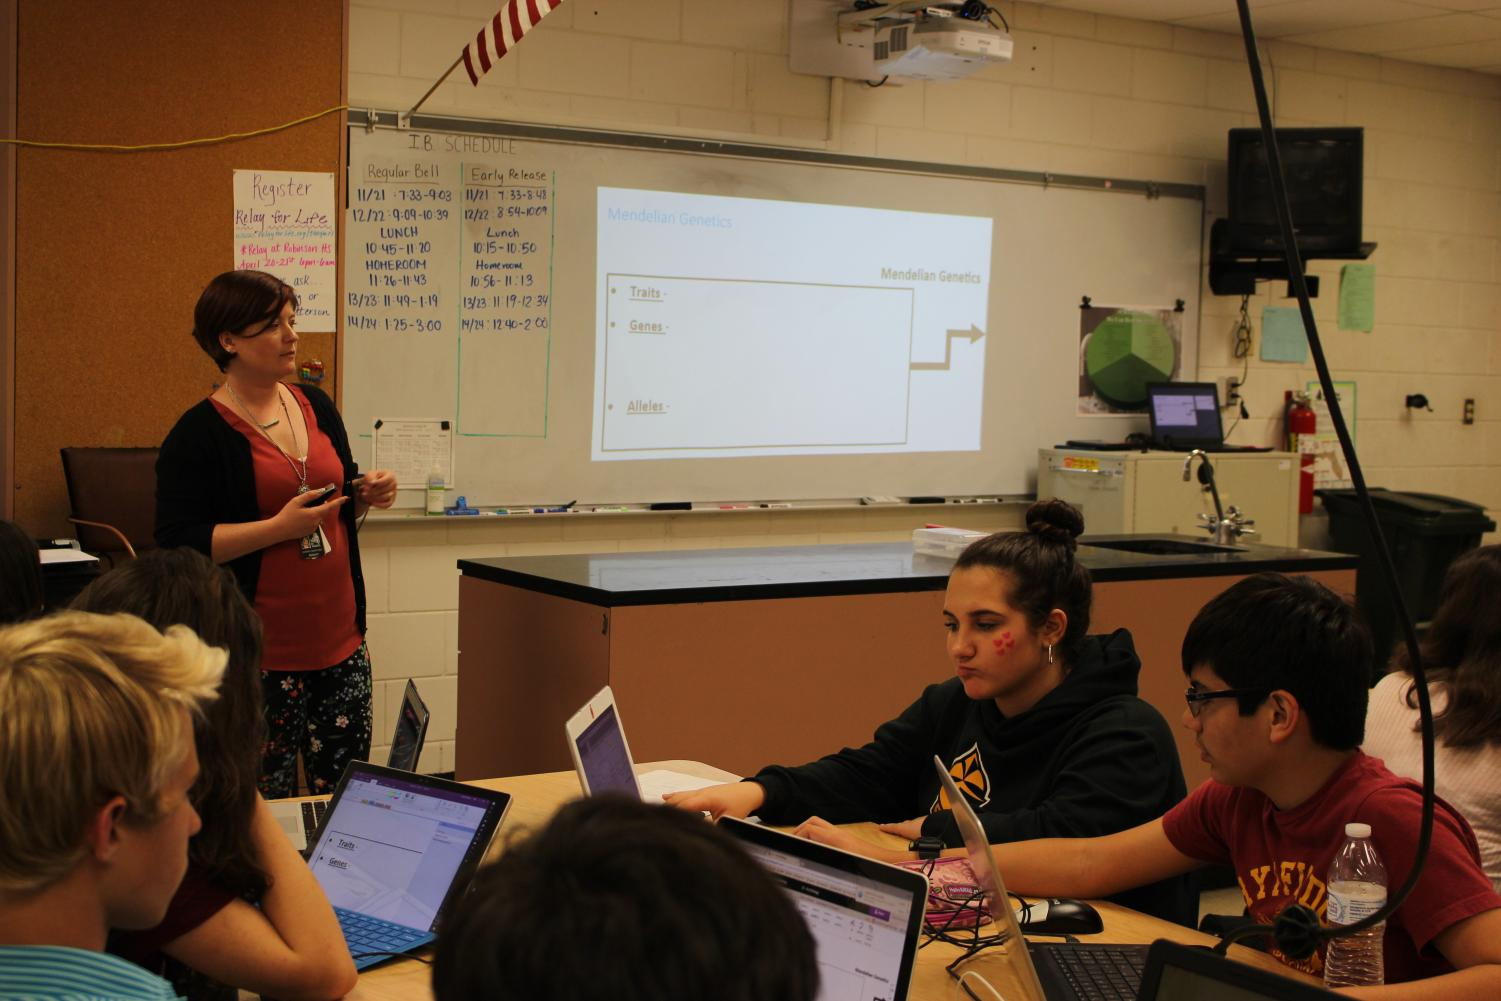 Sanford lectures the class on the day's lesson in her new position as the IB biology teacher.